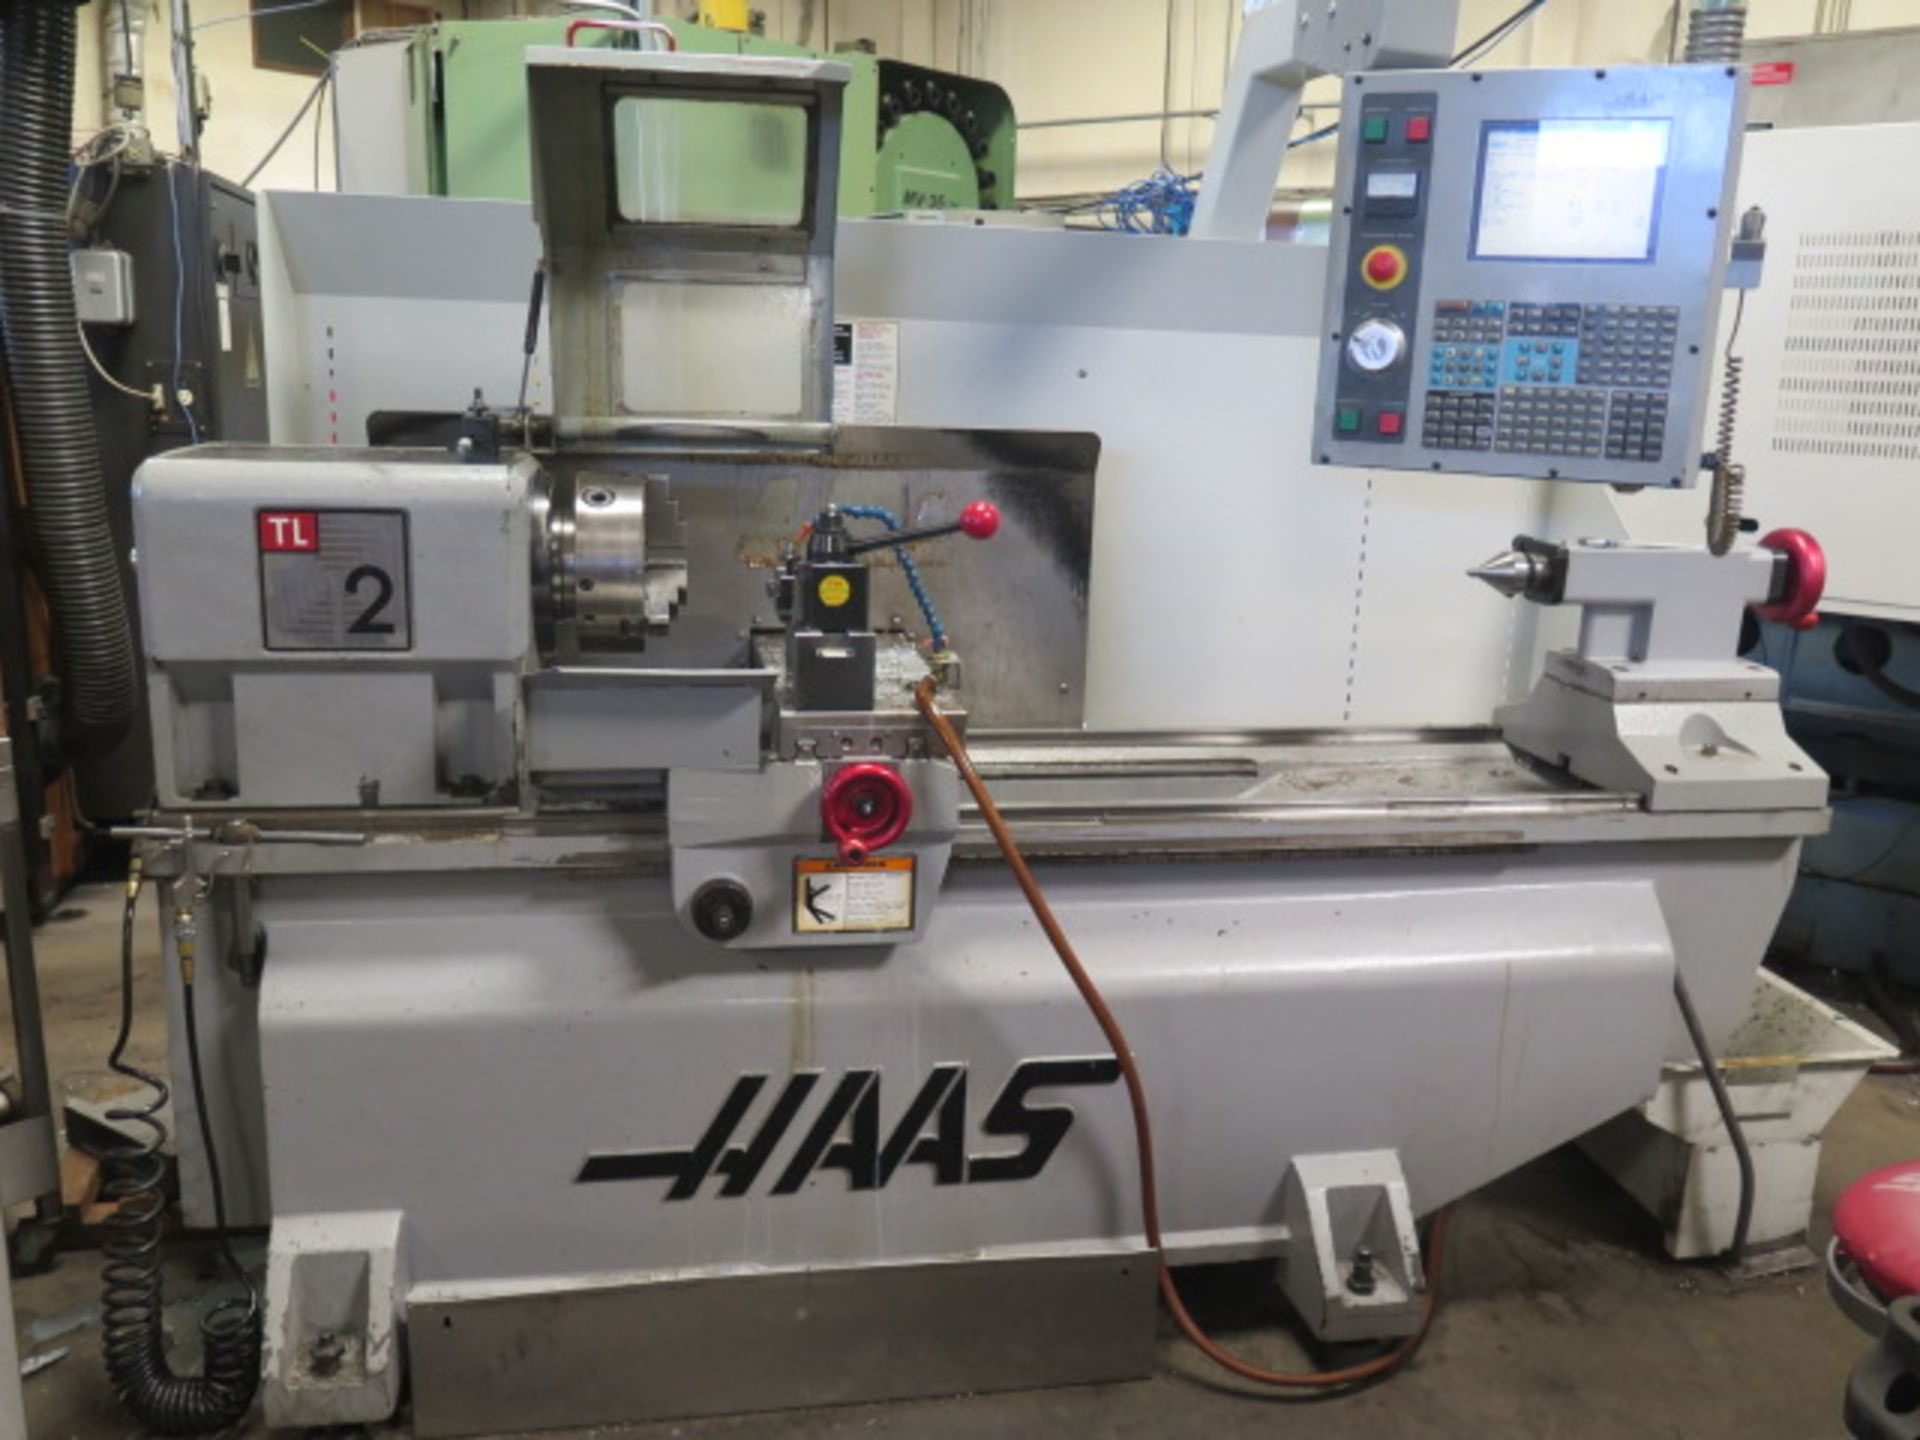 2004 Haas TL2 CNC Tool Room Lathe s/n 68351 w/ Haas Controls, Tailstock, Steady Rest, SOLD AS IS